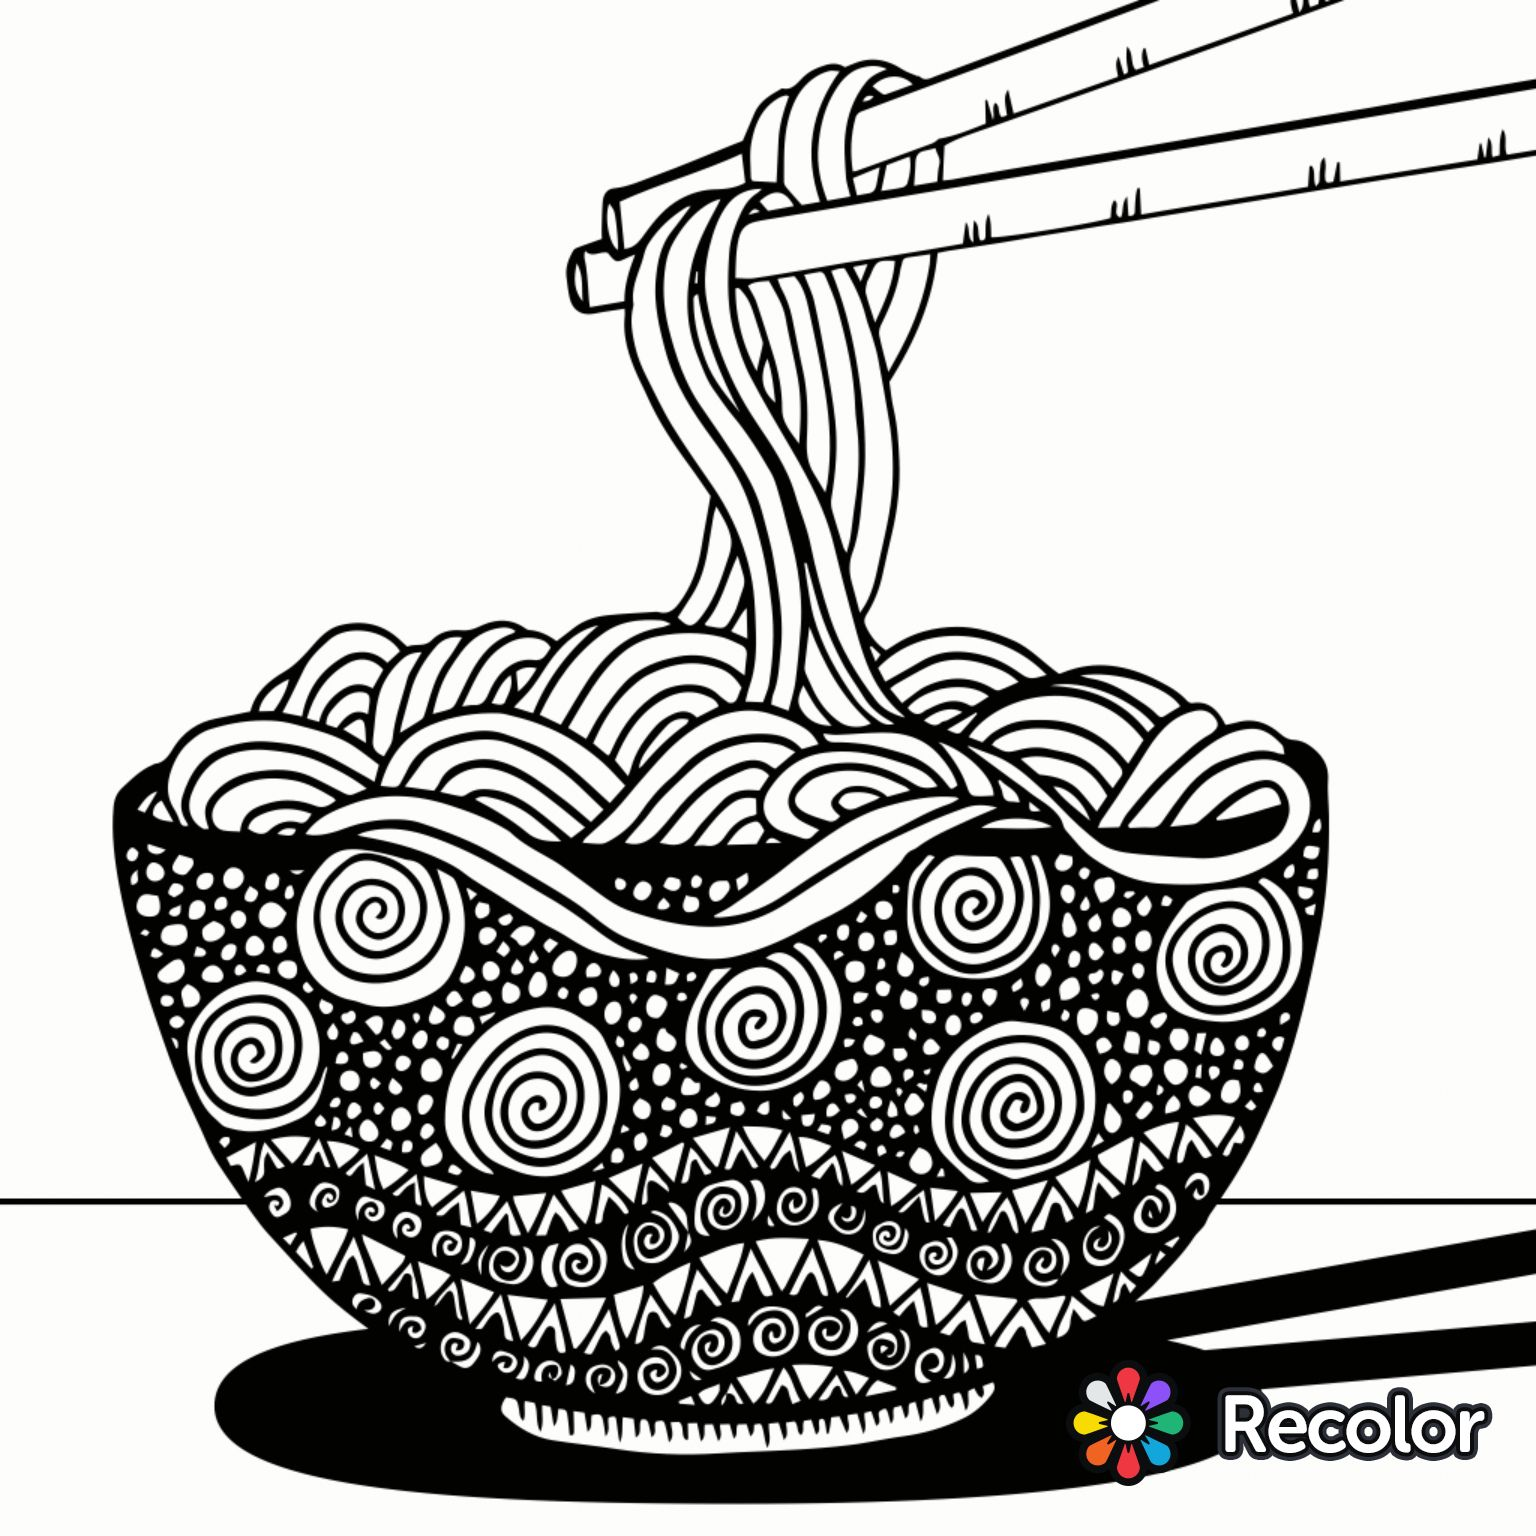 1536x1536 Noodles To Color Recolor App Coloring Pages For Adults